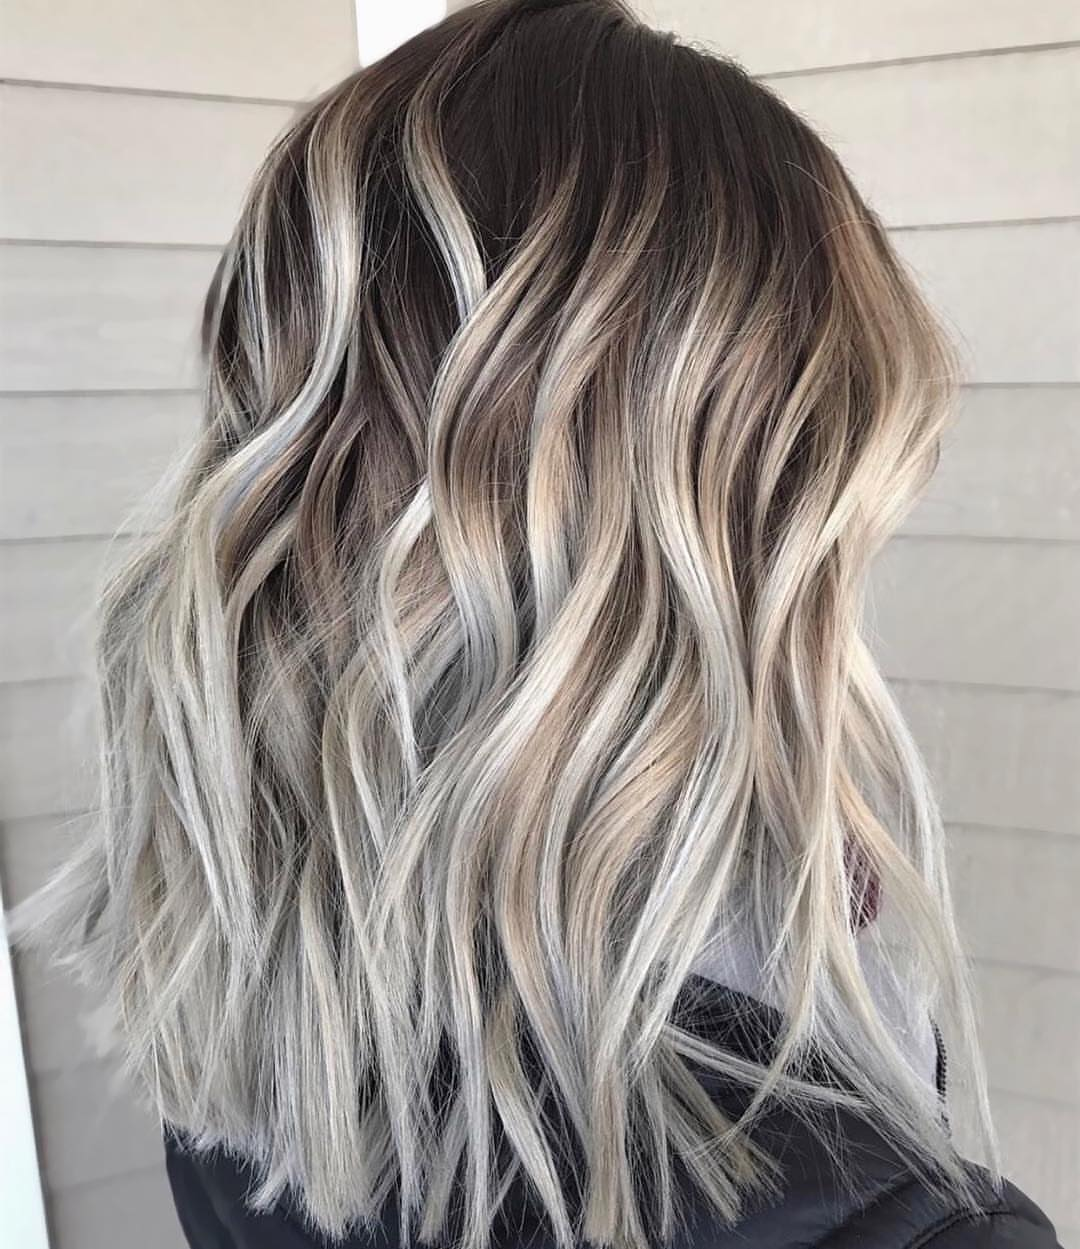 Frisuren Ombre 2015 50 Hottest Ombre Hair Color Ideas For 2018 Ombre Hairstyles